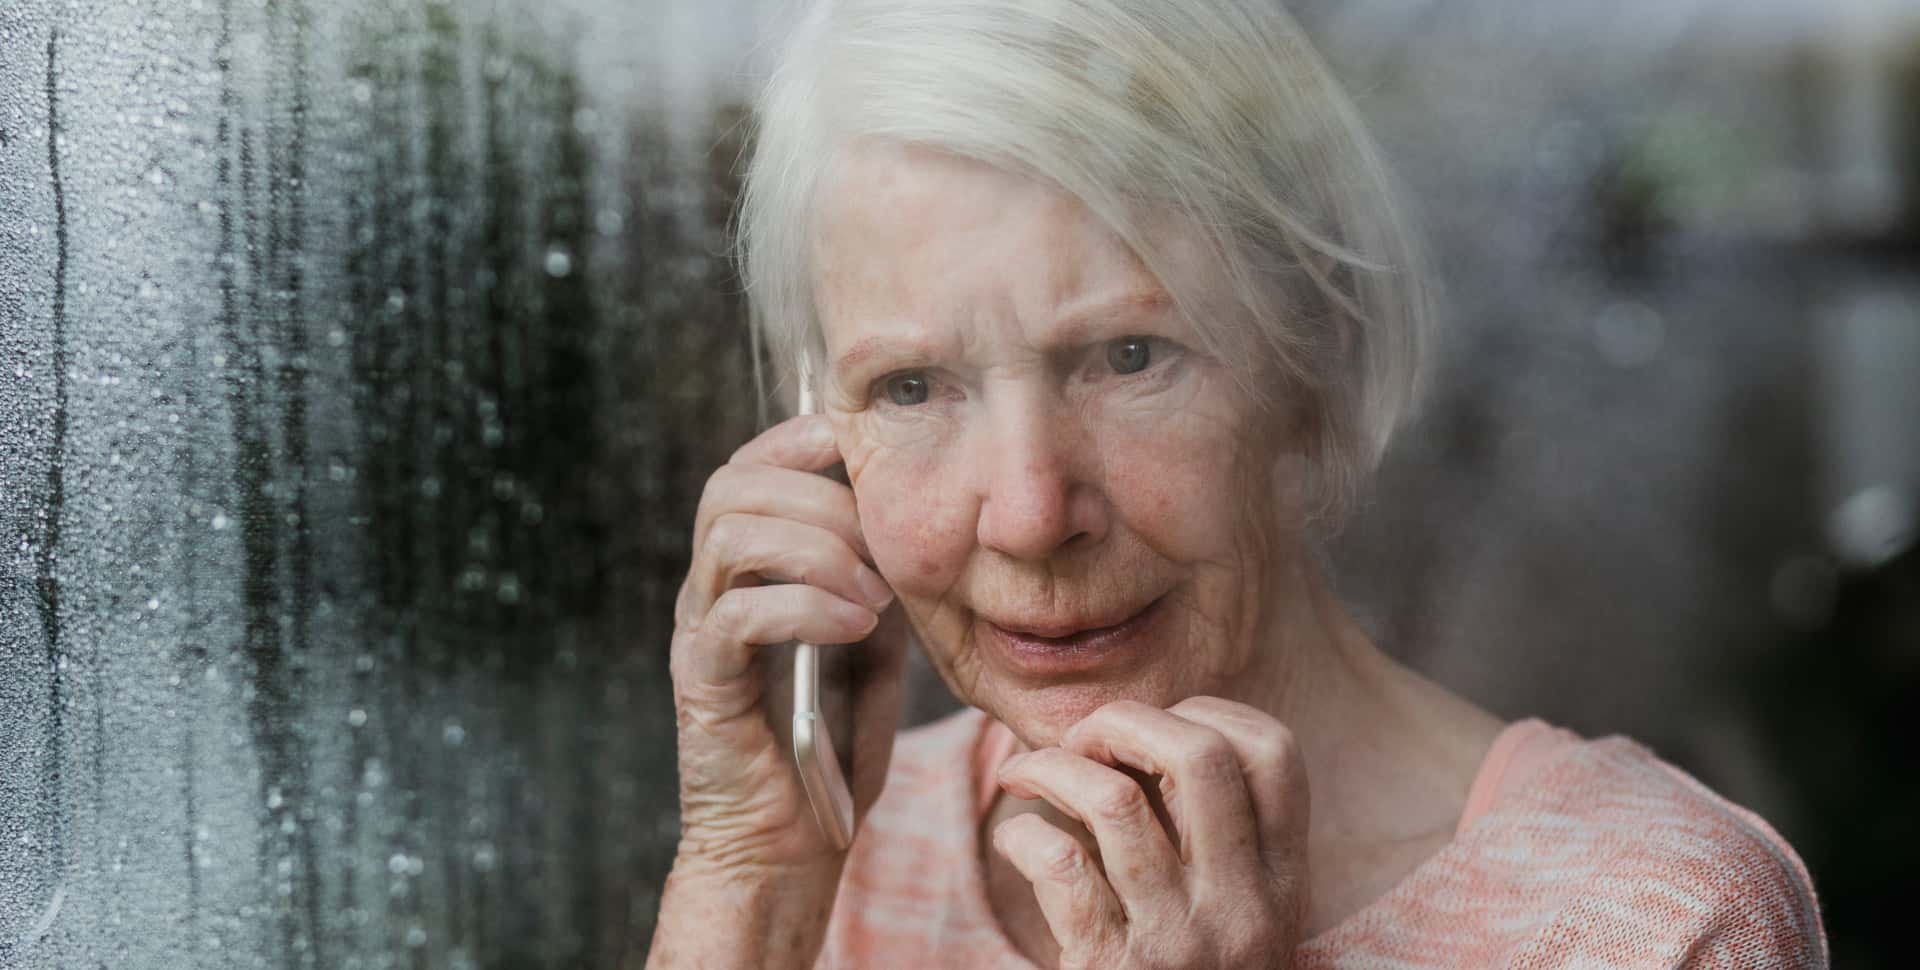 Older woman looking out window at storm while on cell phone with worried expression